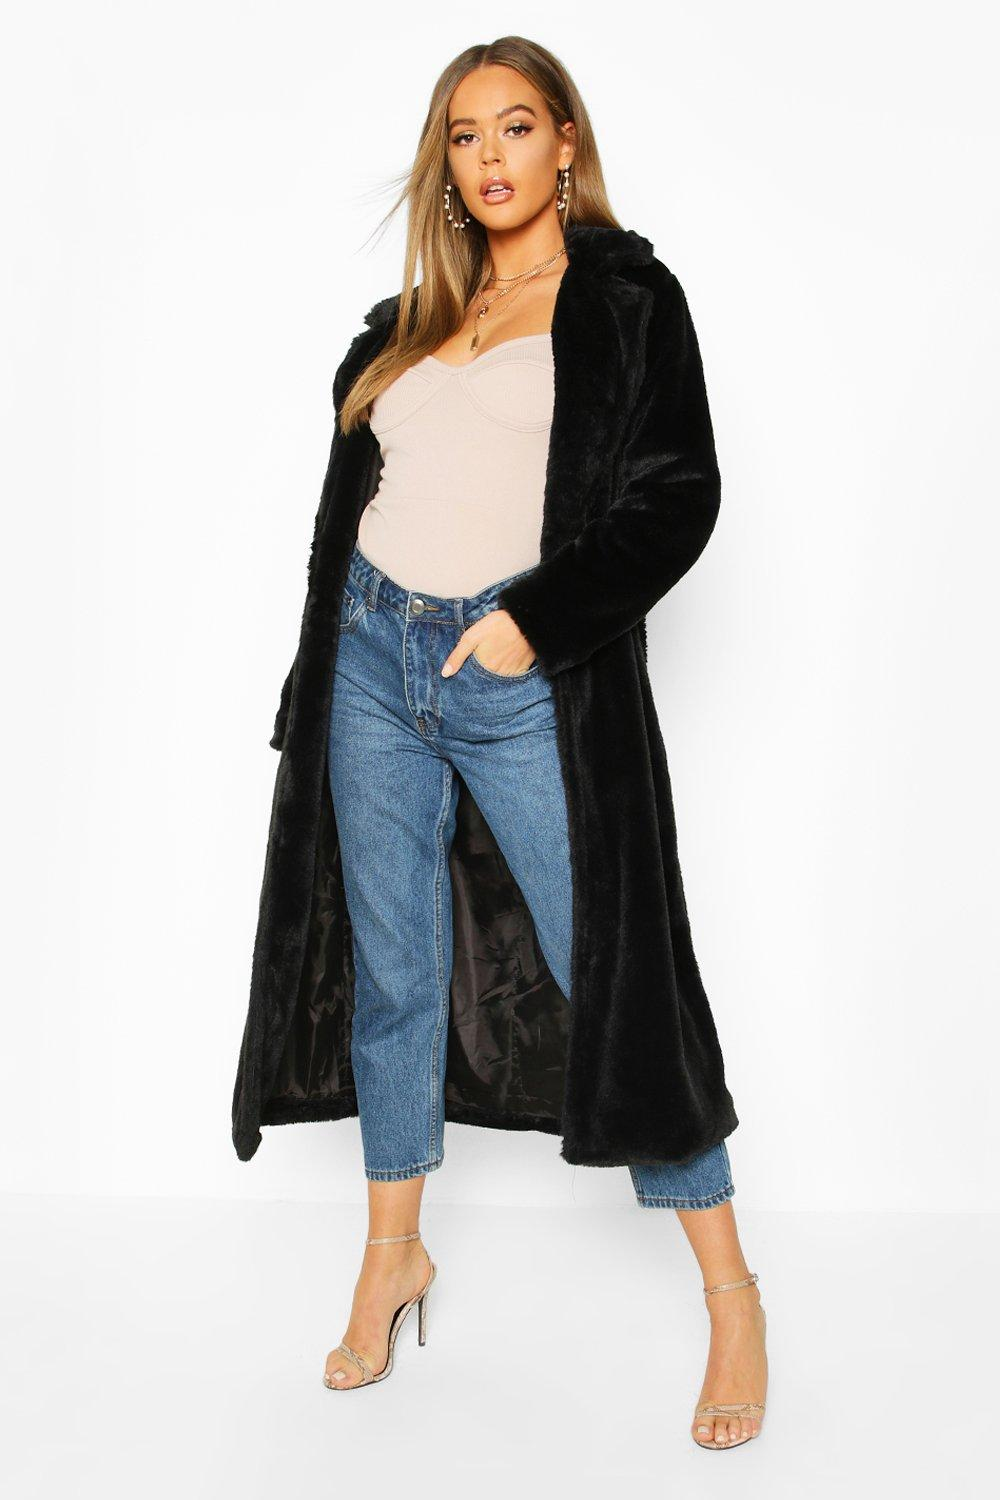 boohoo Womens Revere Collar Faux Fur Coat - Black - 12, Black